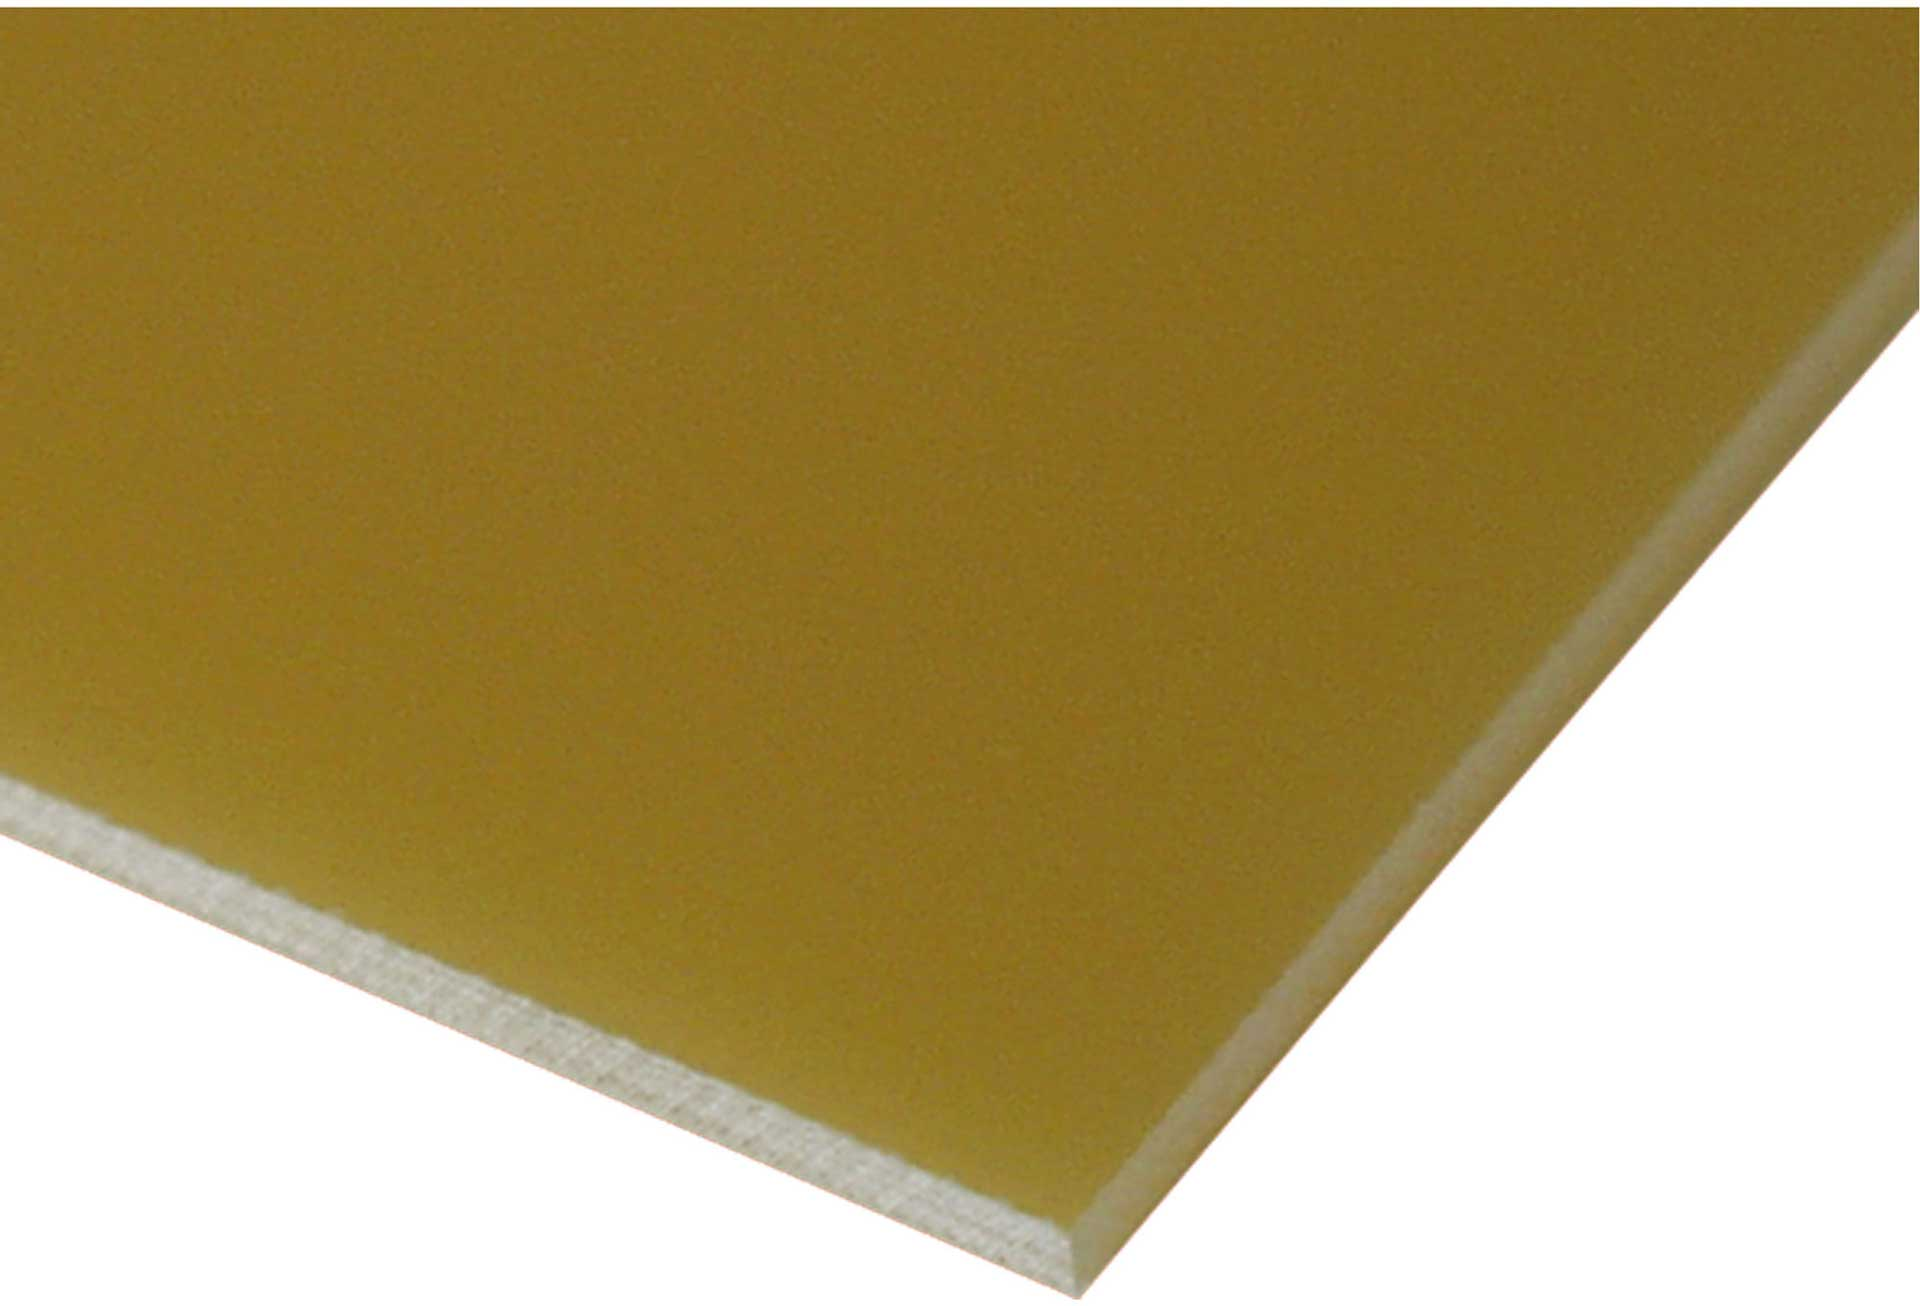 ROBBE GLASS FIBRE SHEET 0,5MM 350/150MM 1PCS.